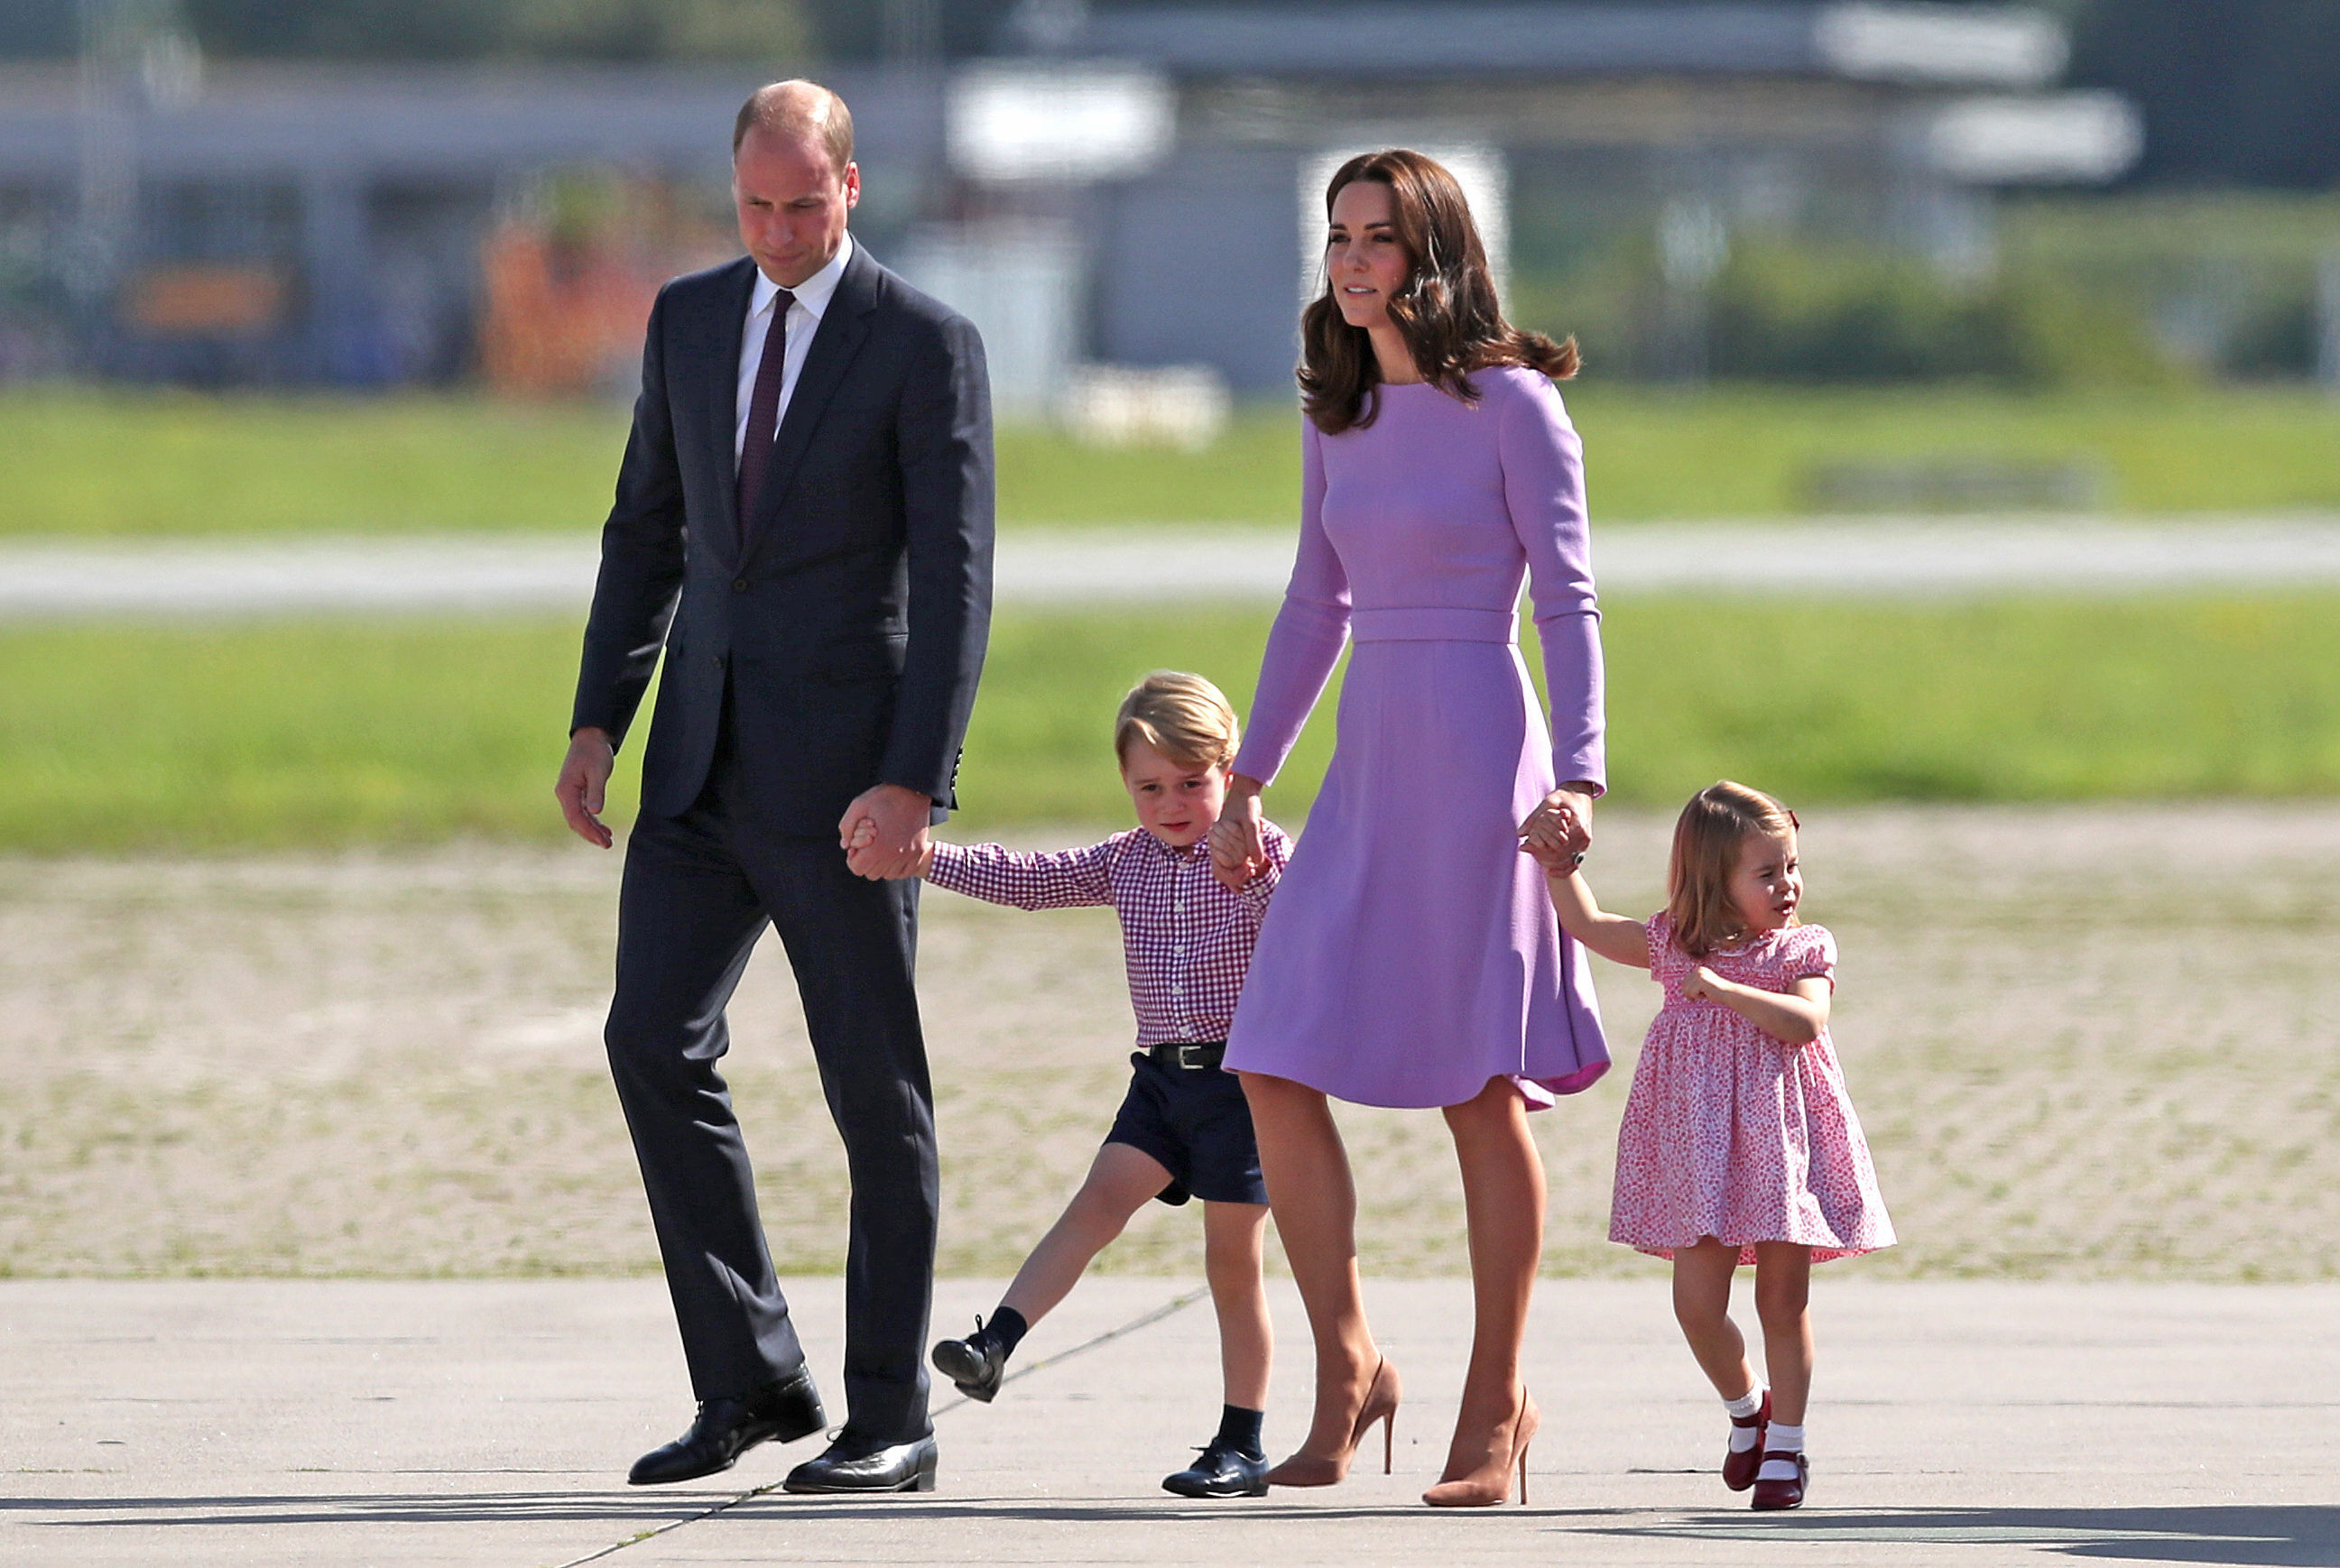 The Duke and Duchess of Cambridge and their children, Prince George and Princess Charlotte, visit Airbus in Hamburg, Germany